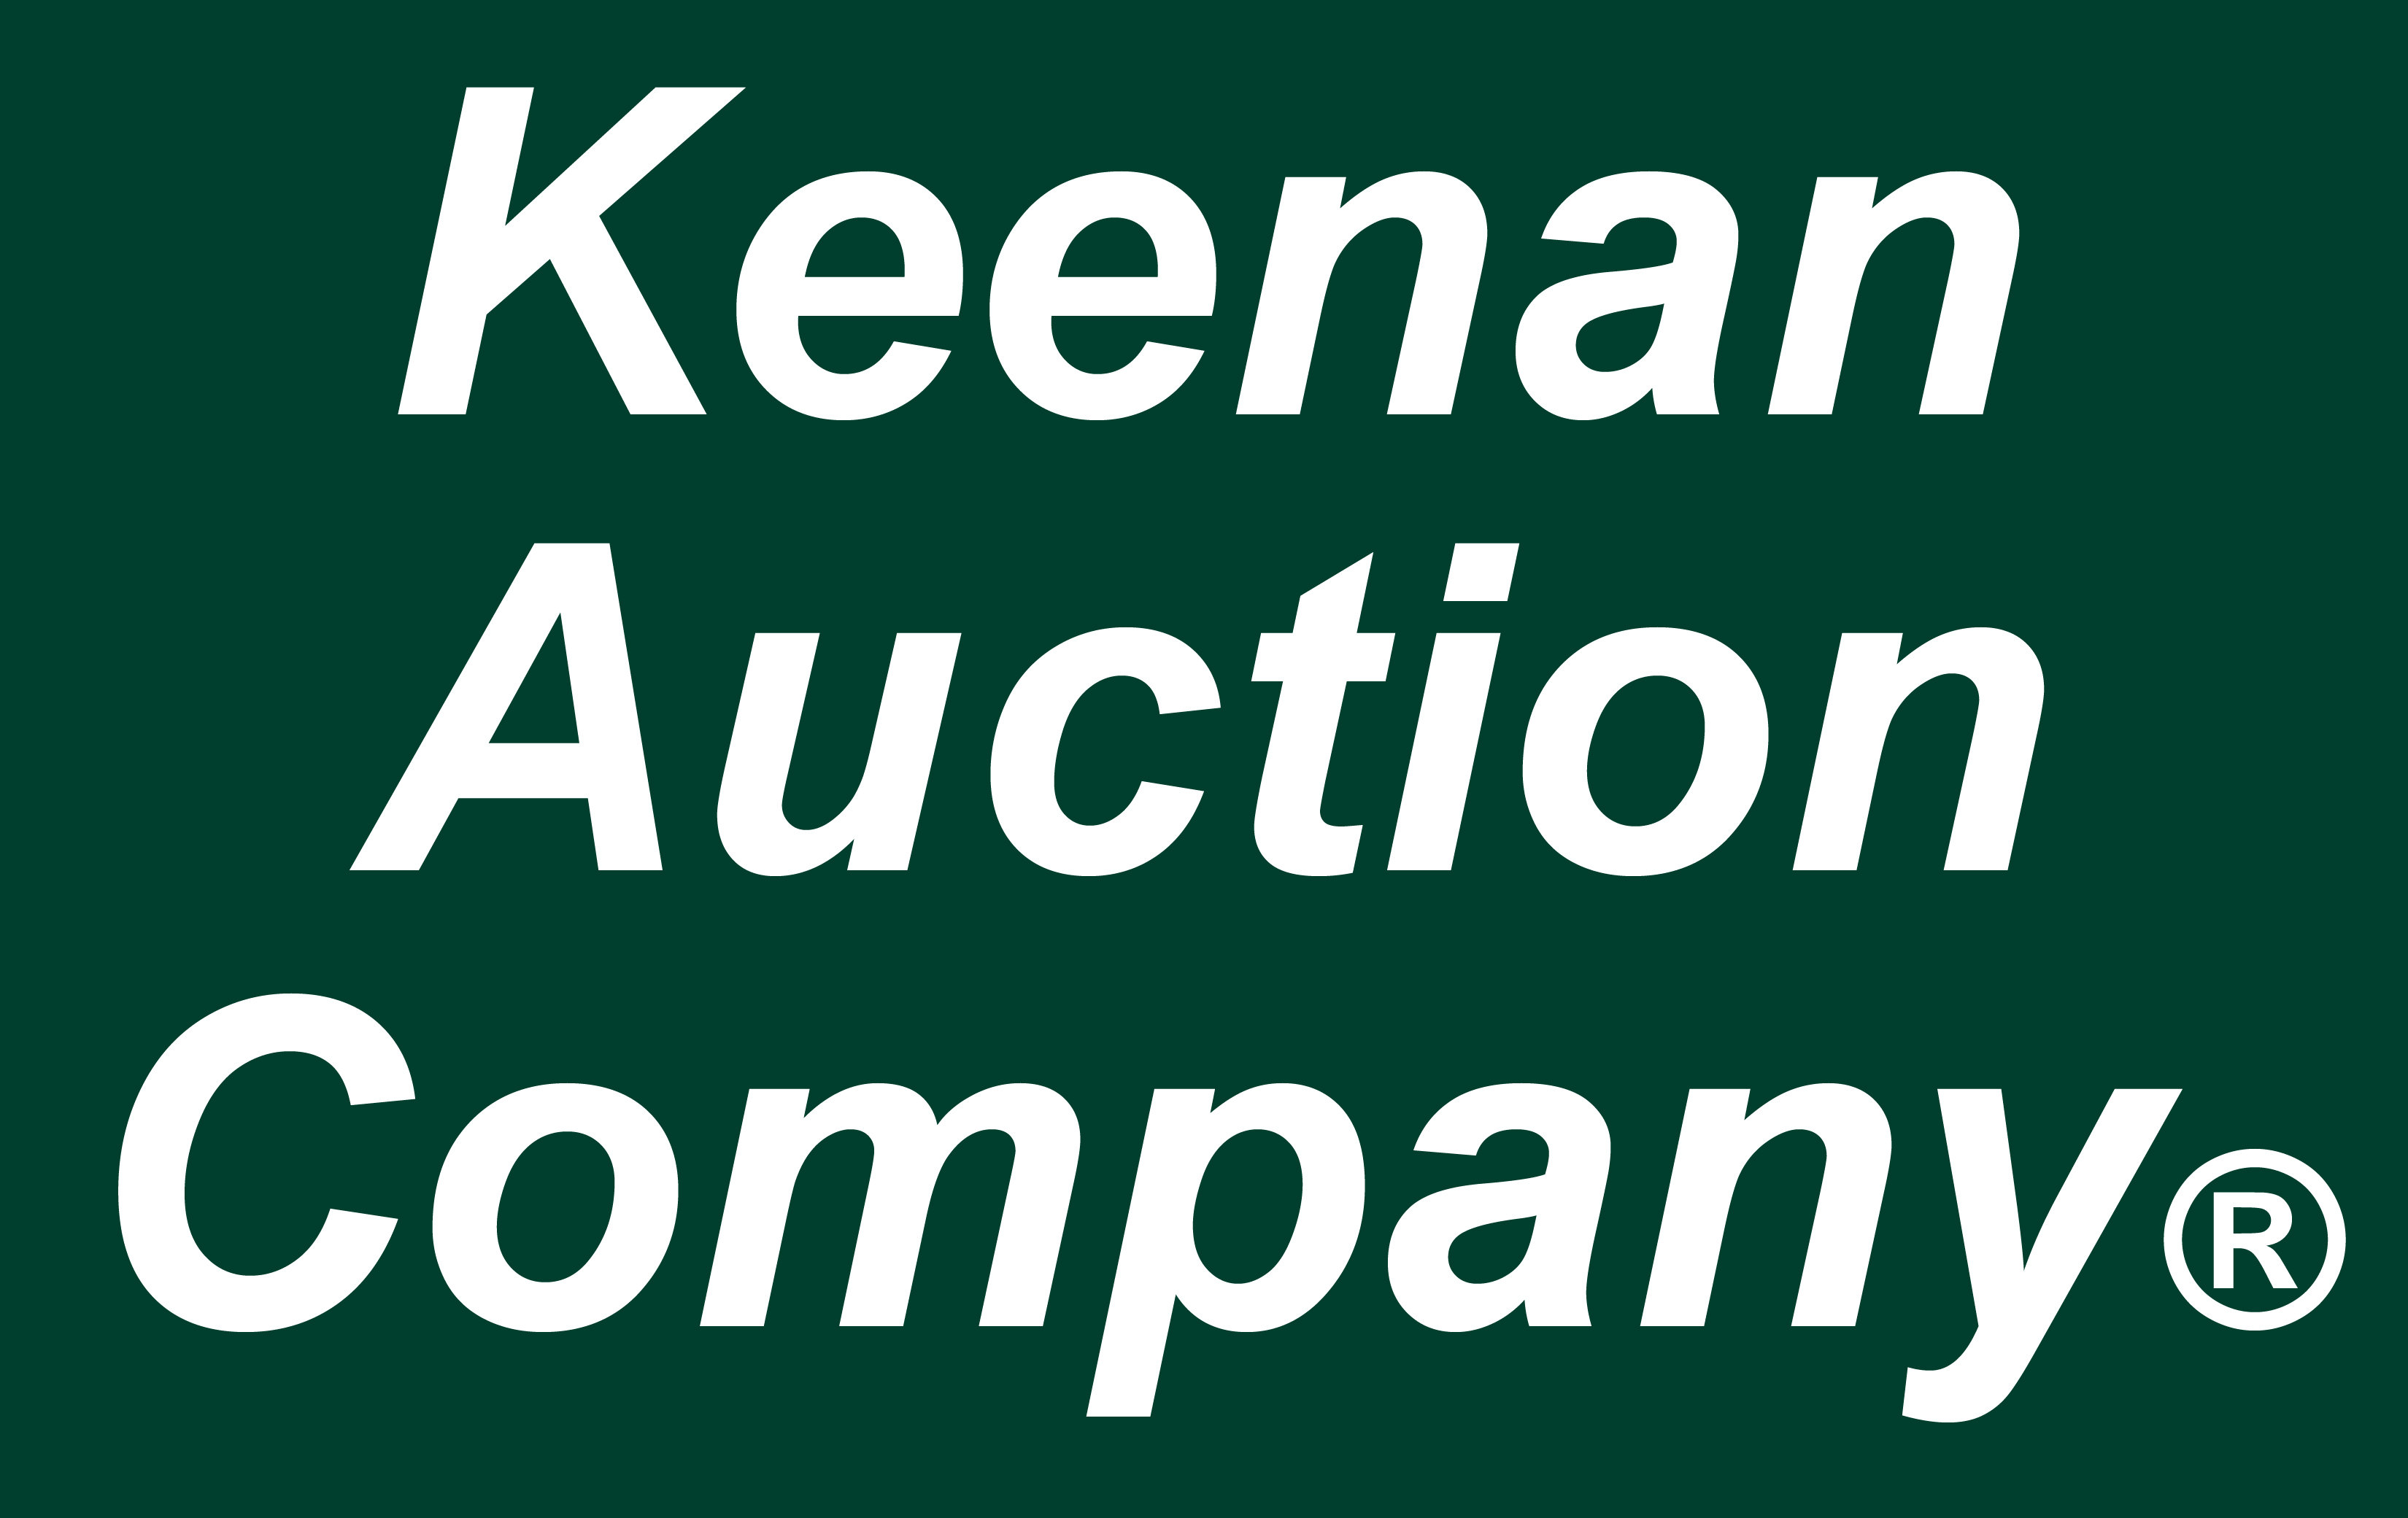 Keenan Auction Company, Inc